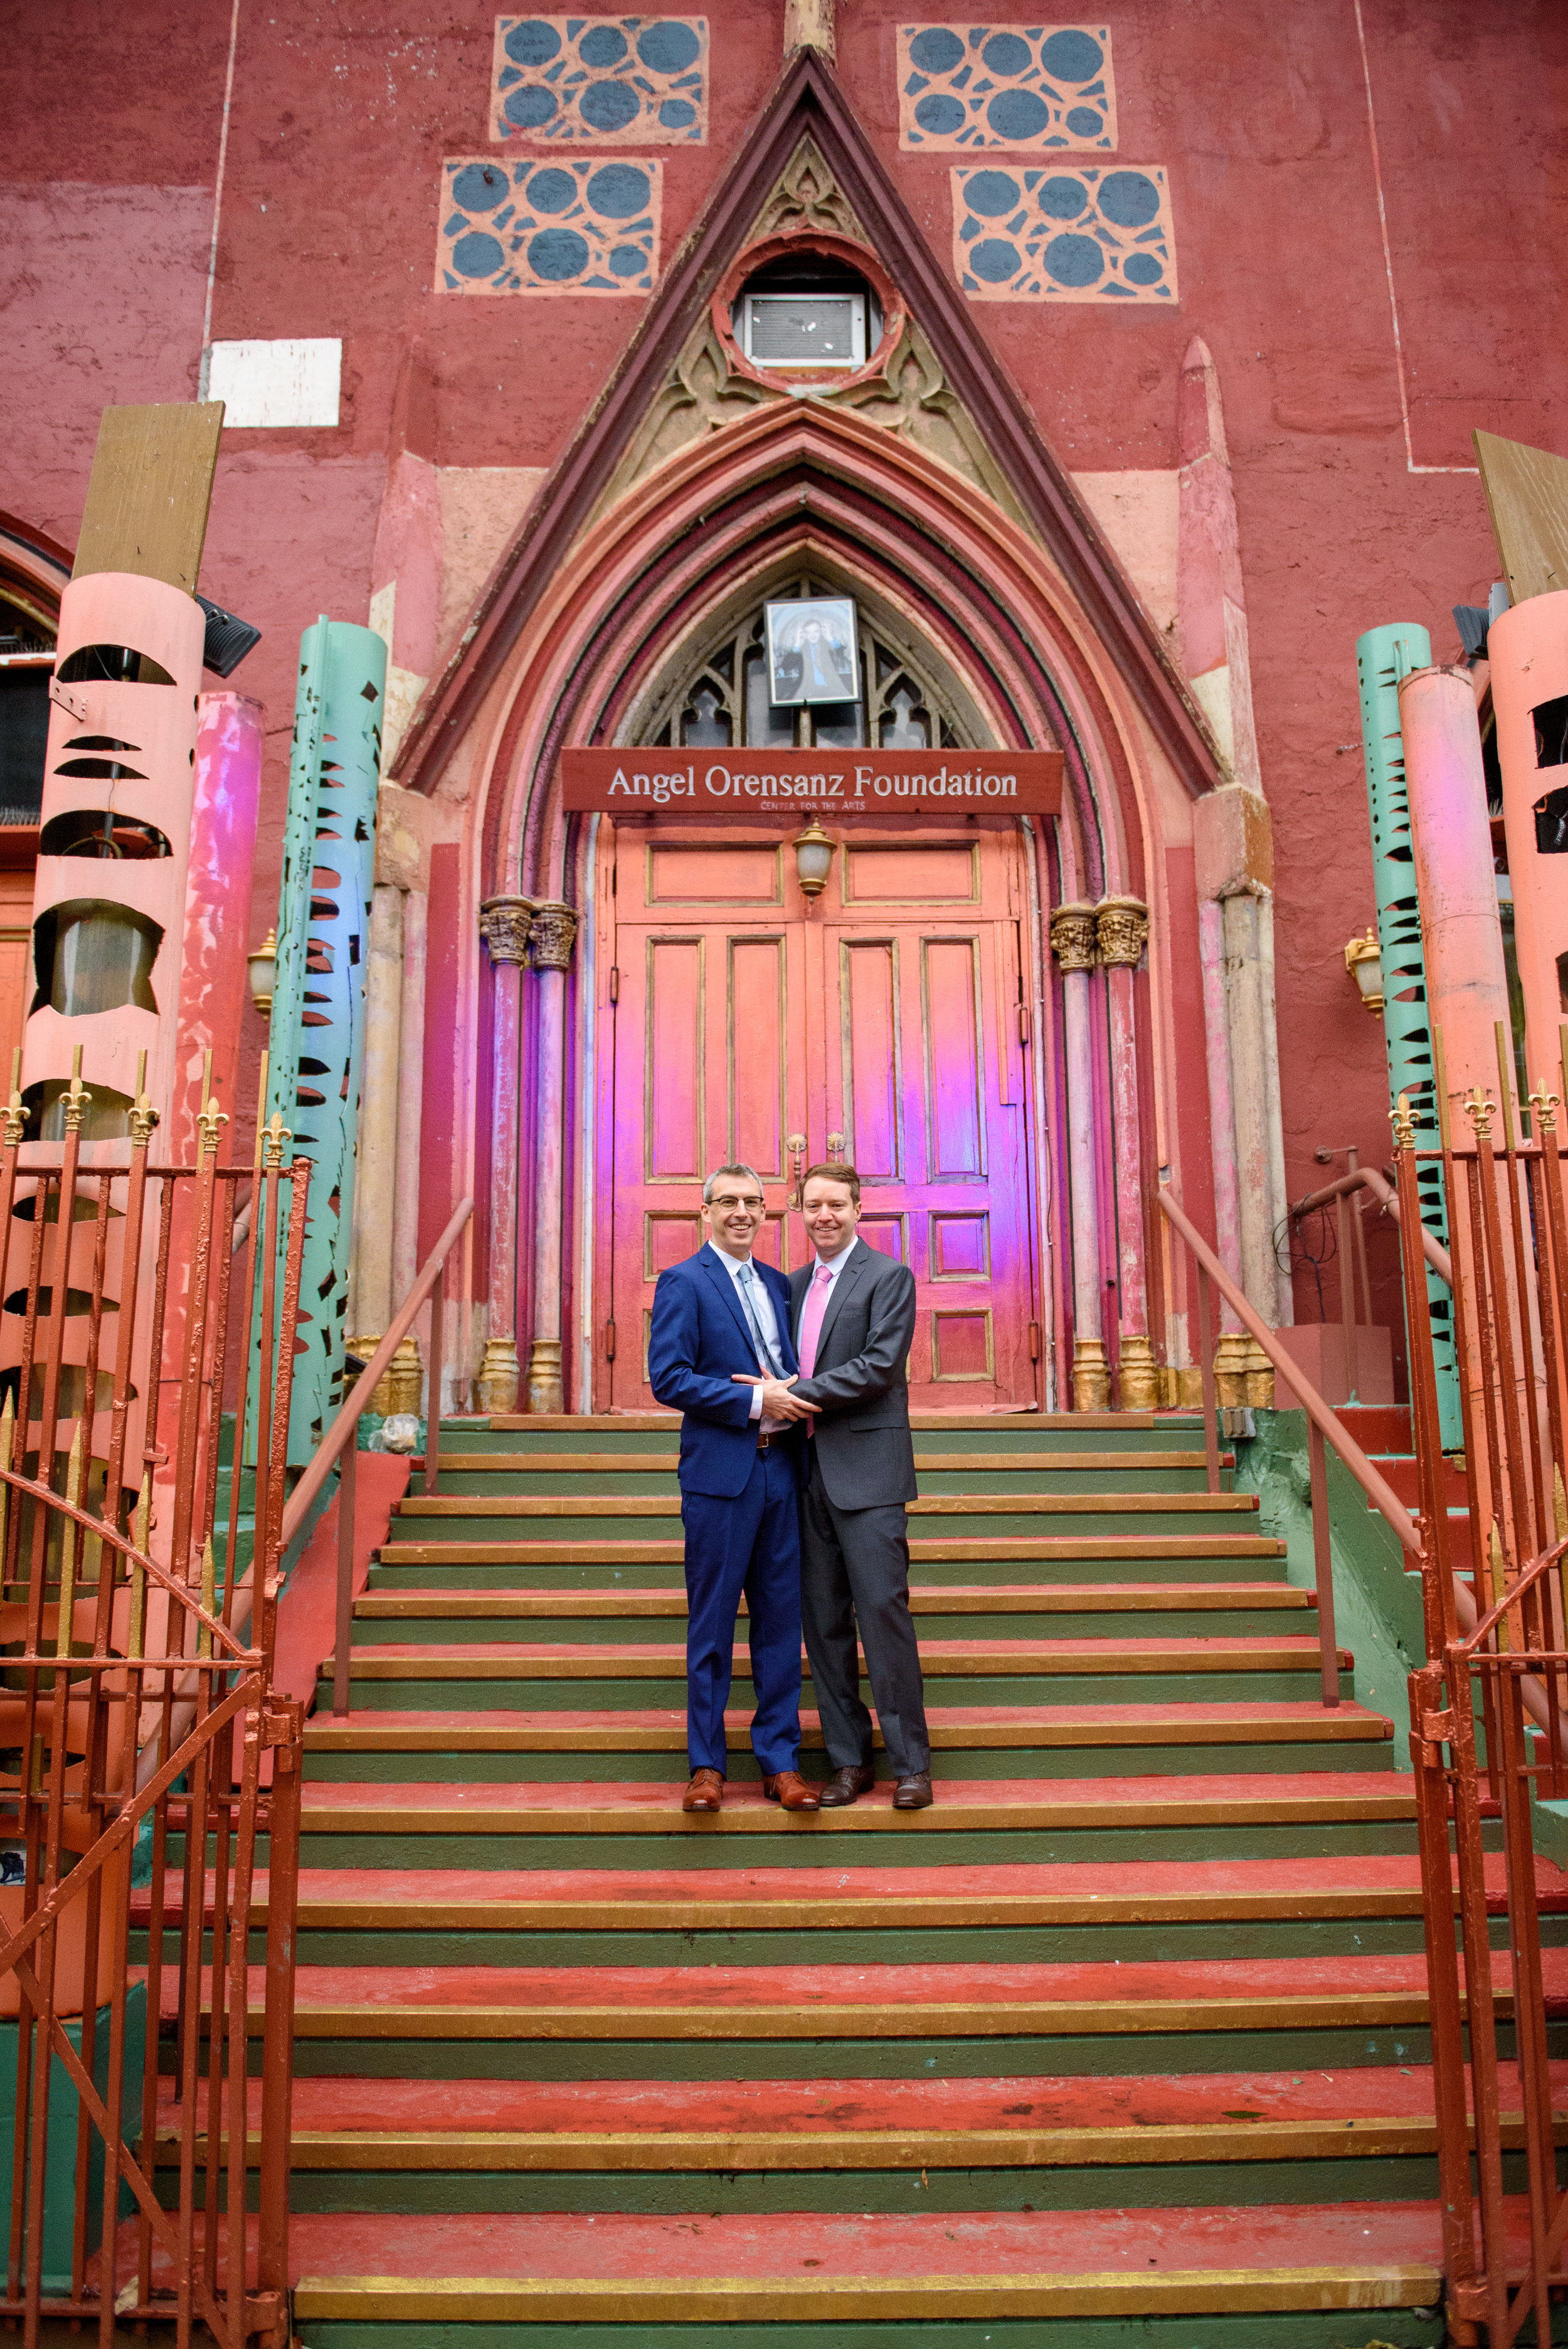 JOHN + ERIC - DRAMATIC LOWER EAST SIDE VENUE ⚡ CUSTOM SUNSET LIGHTING TREATMENTS ⚡ A FLOATING SUPPER ⚡ VOWS WE CRIED THROUGH